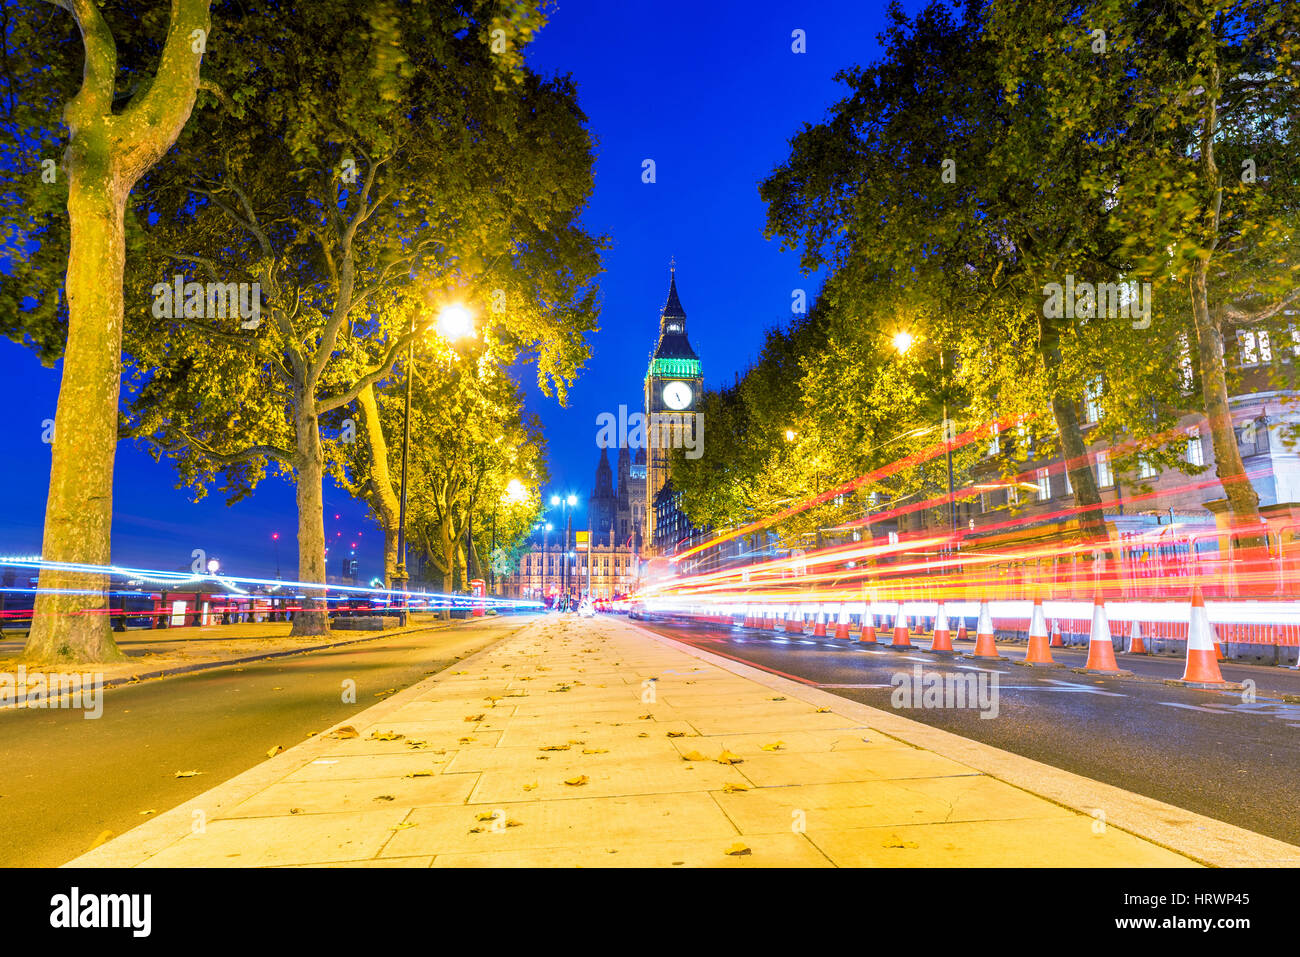 Cityscape of a Street in Westminster with Big Ben in the distance at night - Stock Image